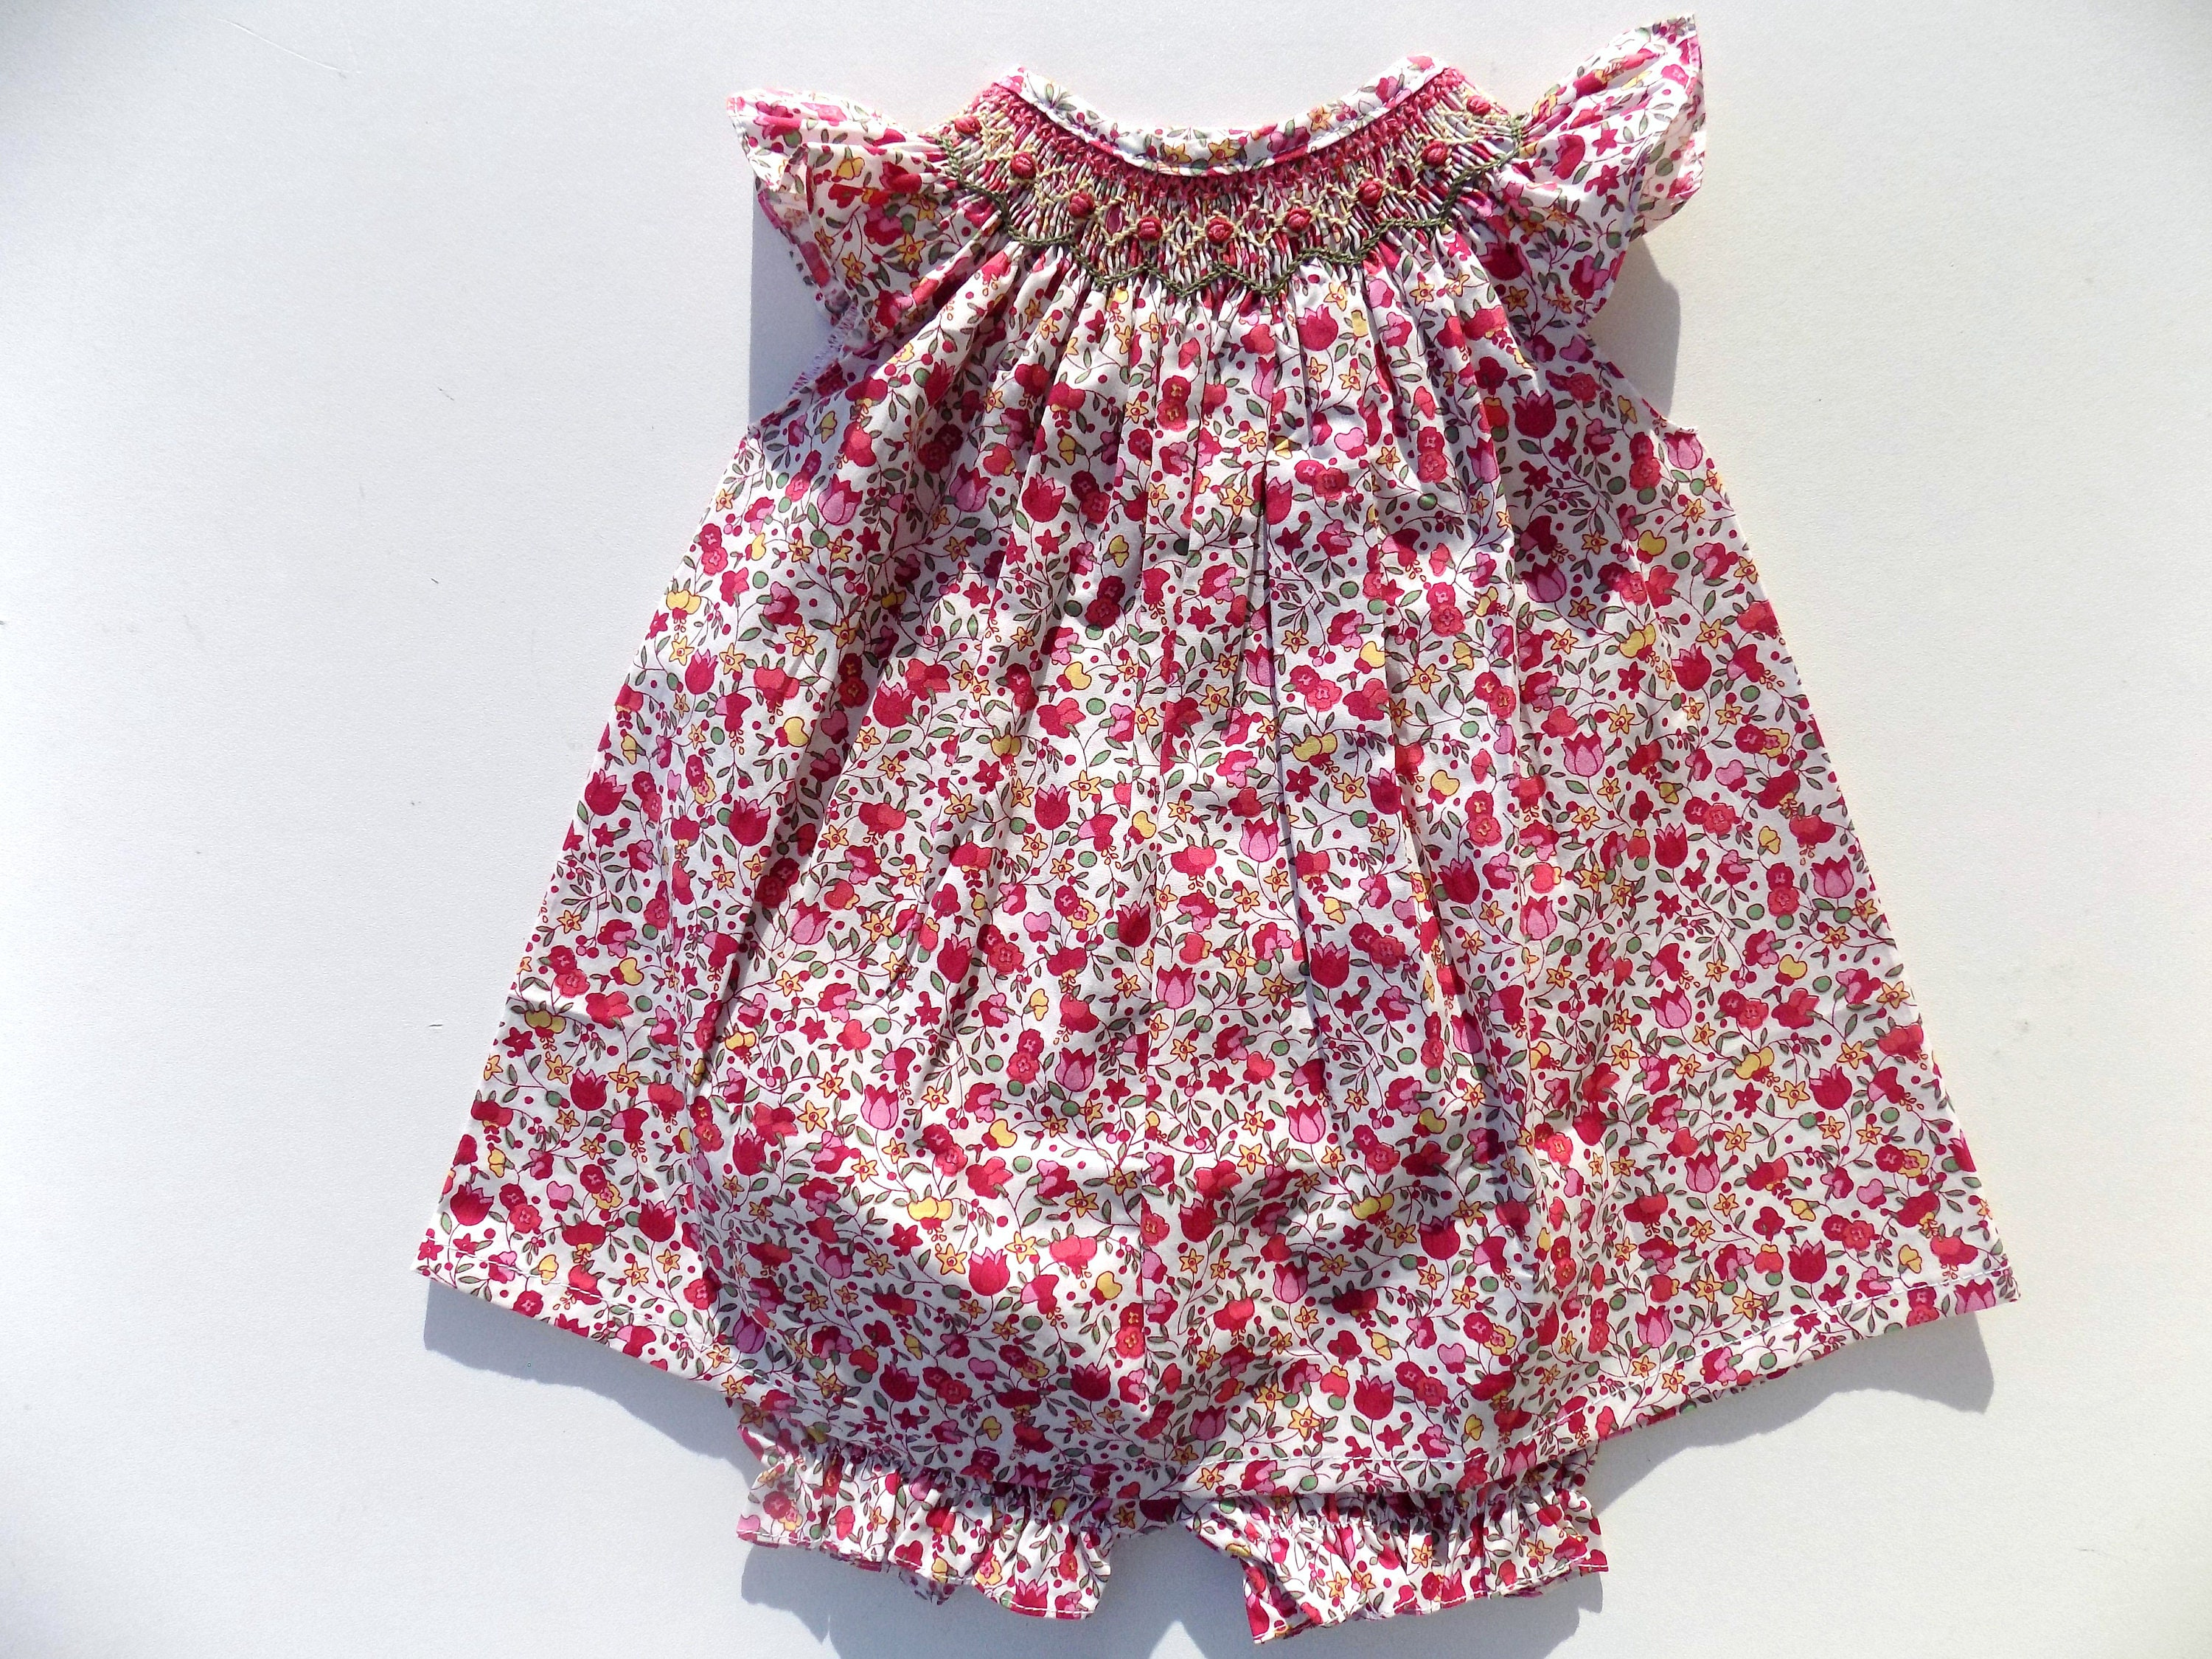 Dress liberty printed red dress smocked baby girl baby dress